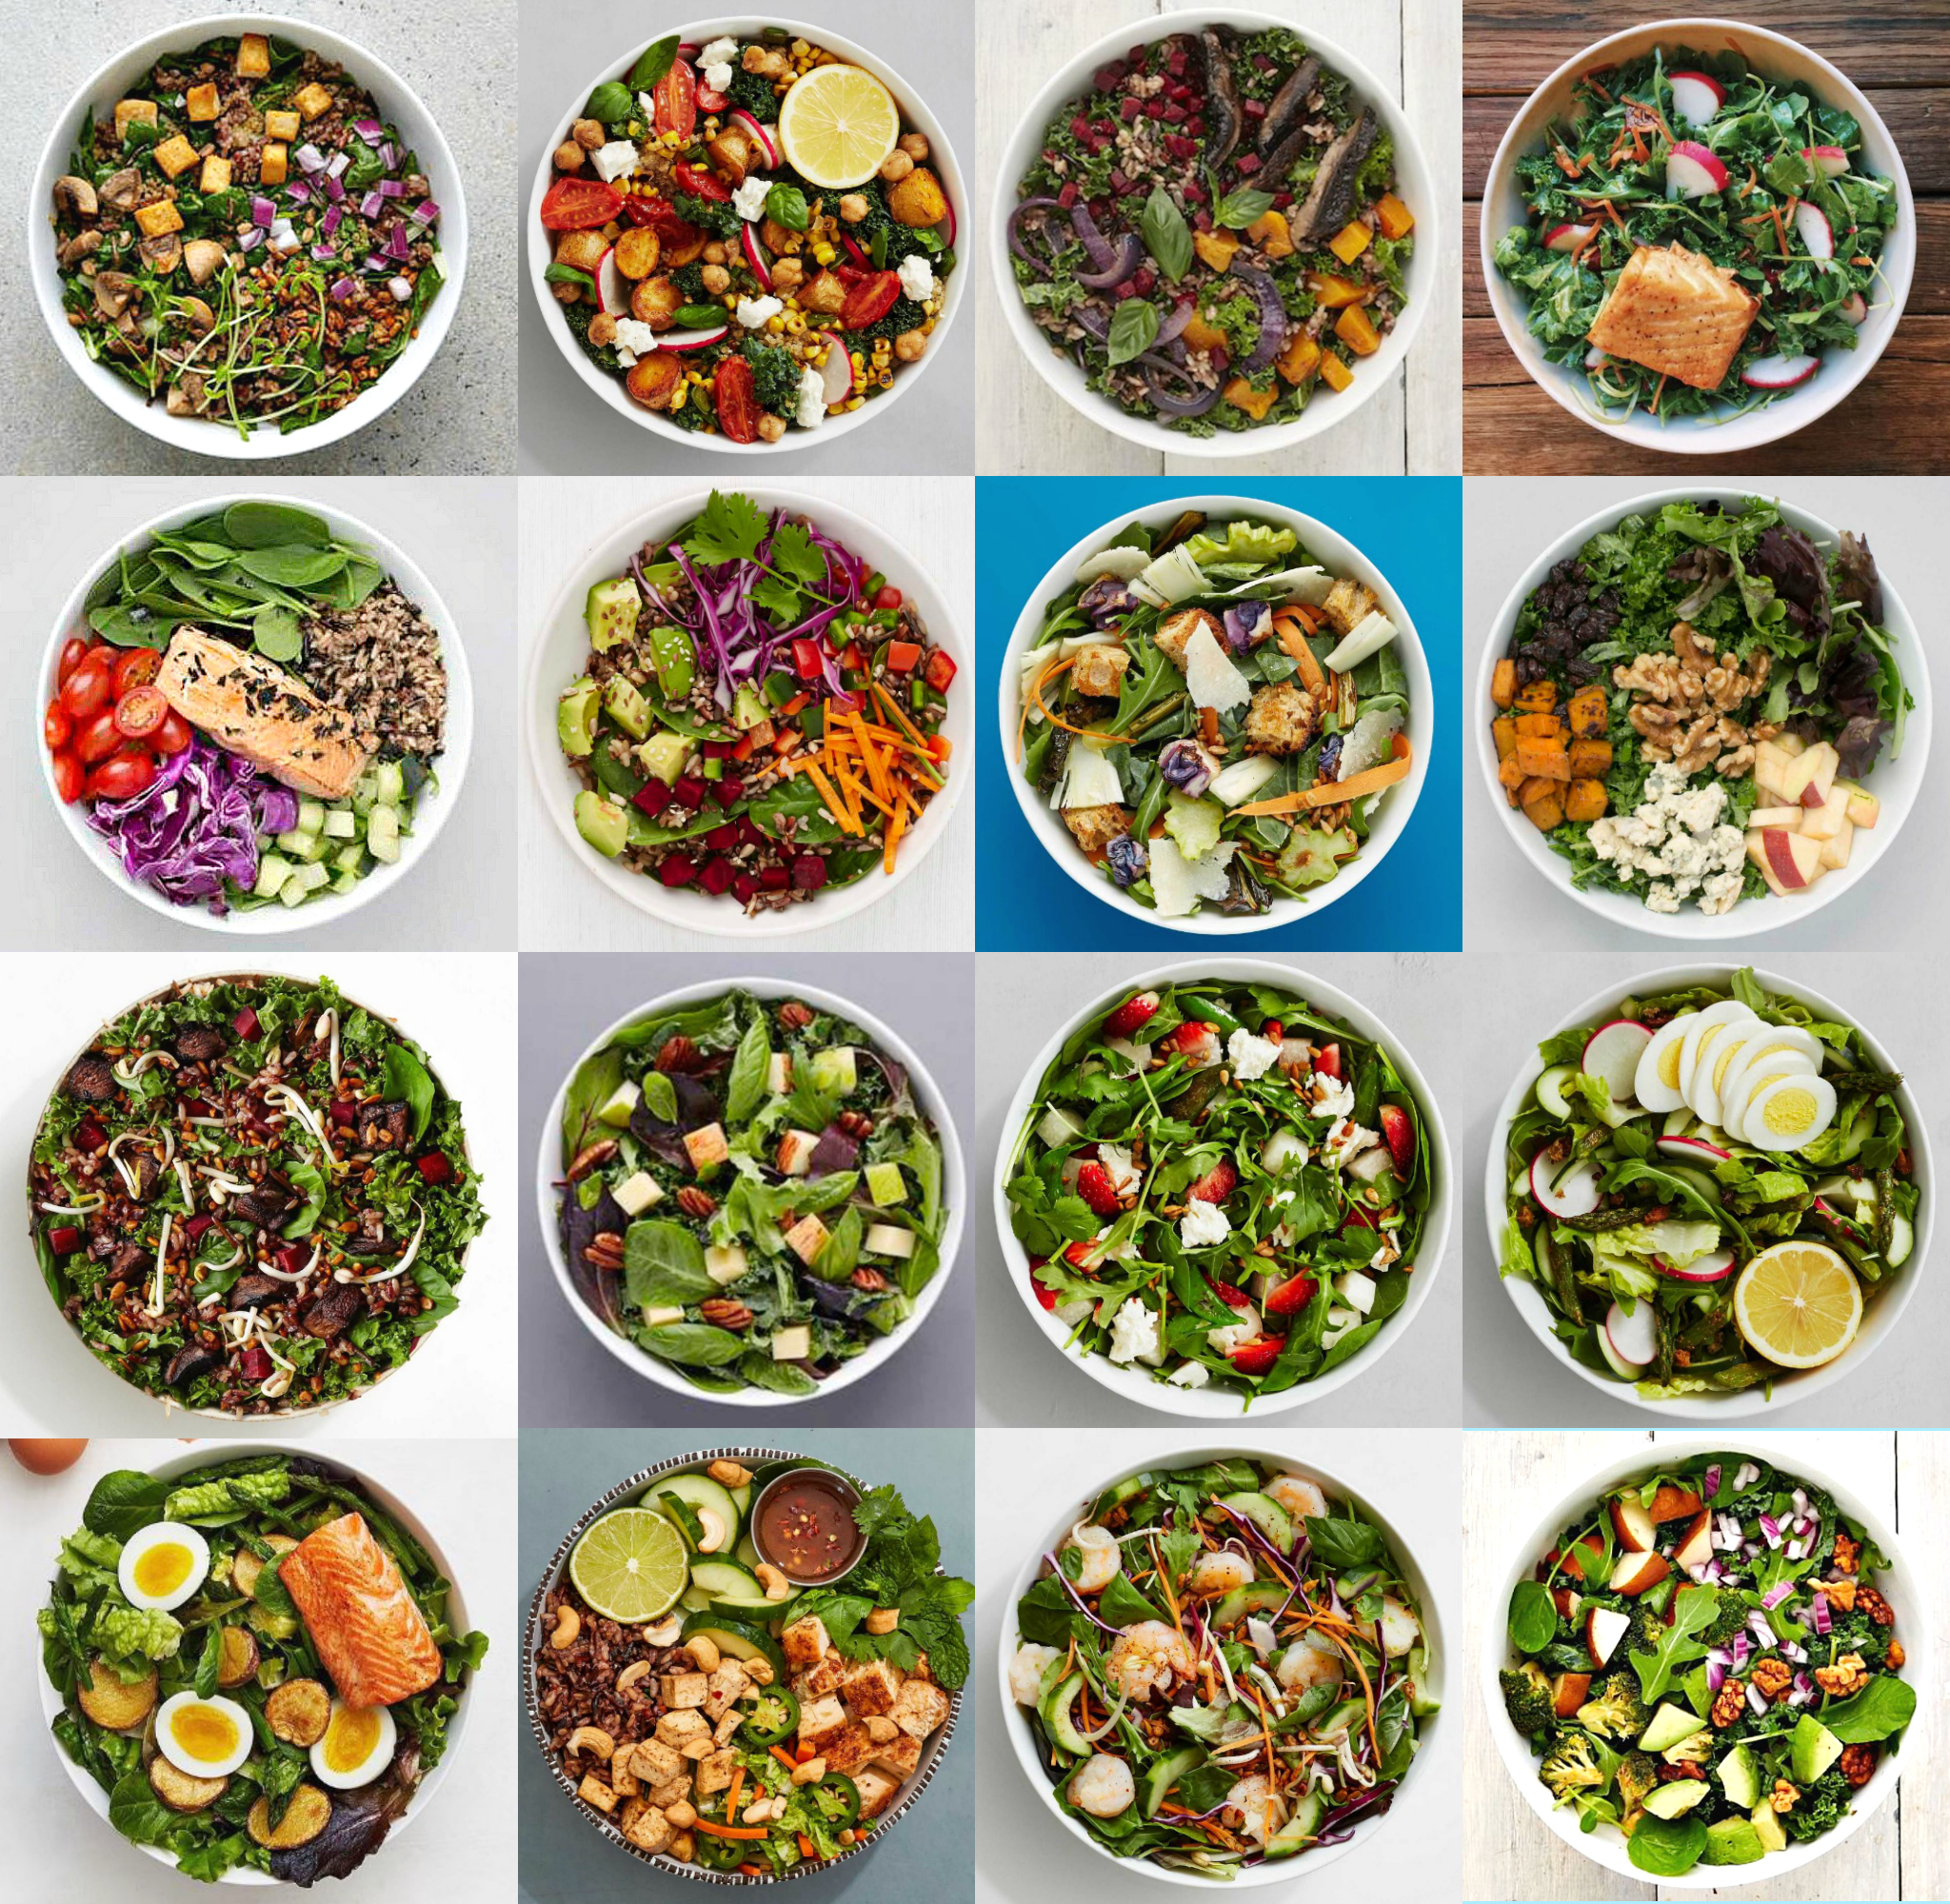 Comprehensive List of 30 Healthy Sweetgreen Salad Bowls by ...